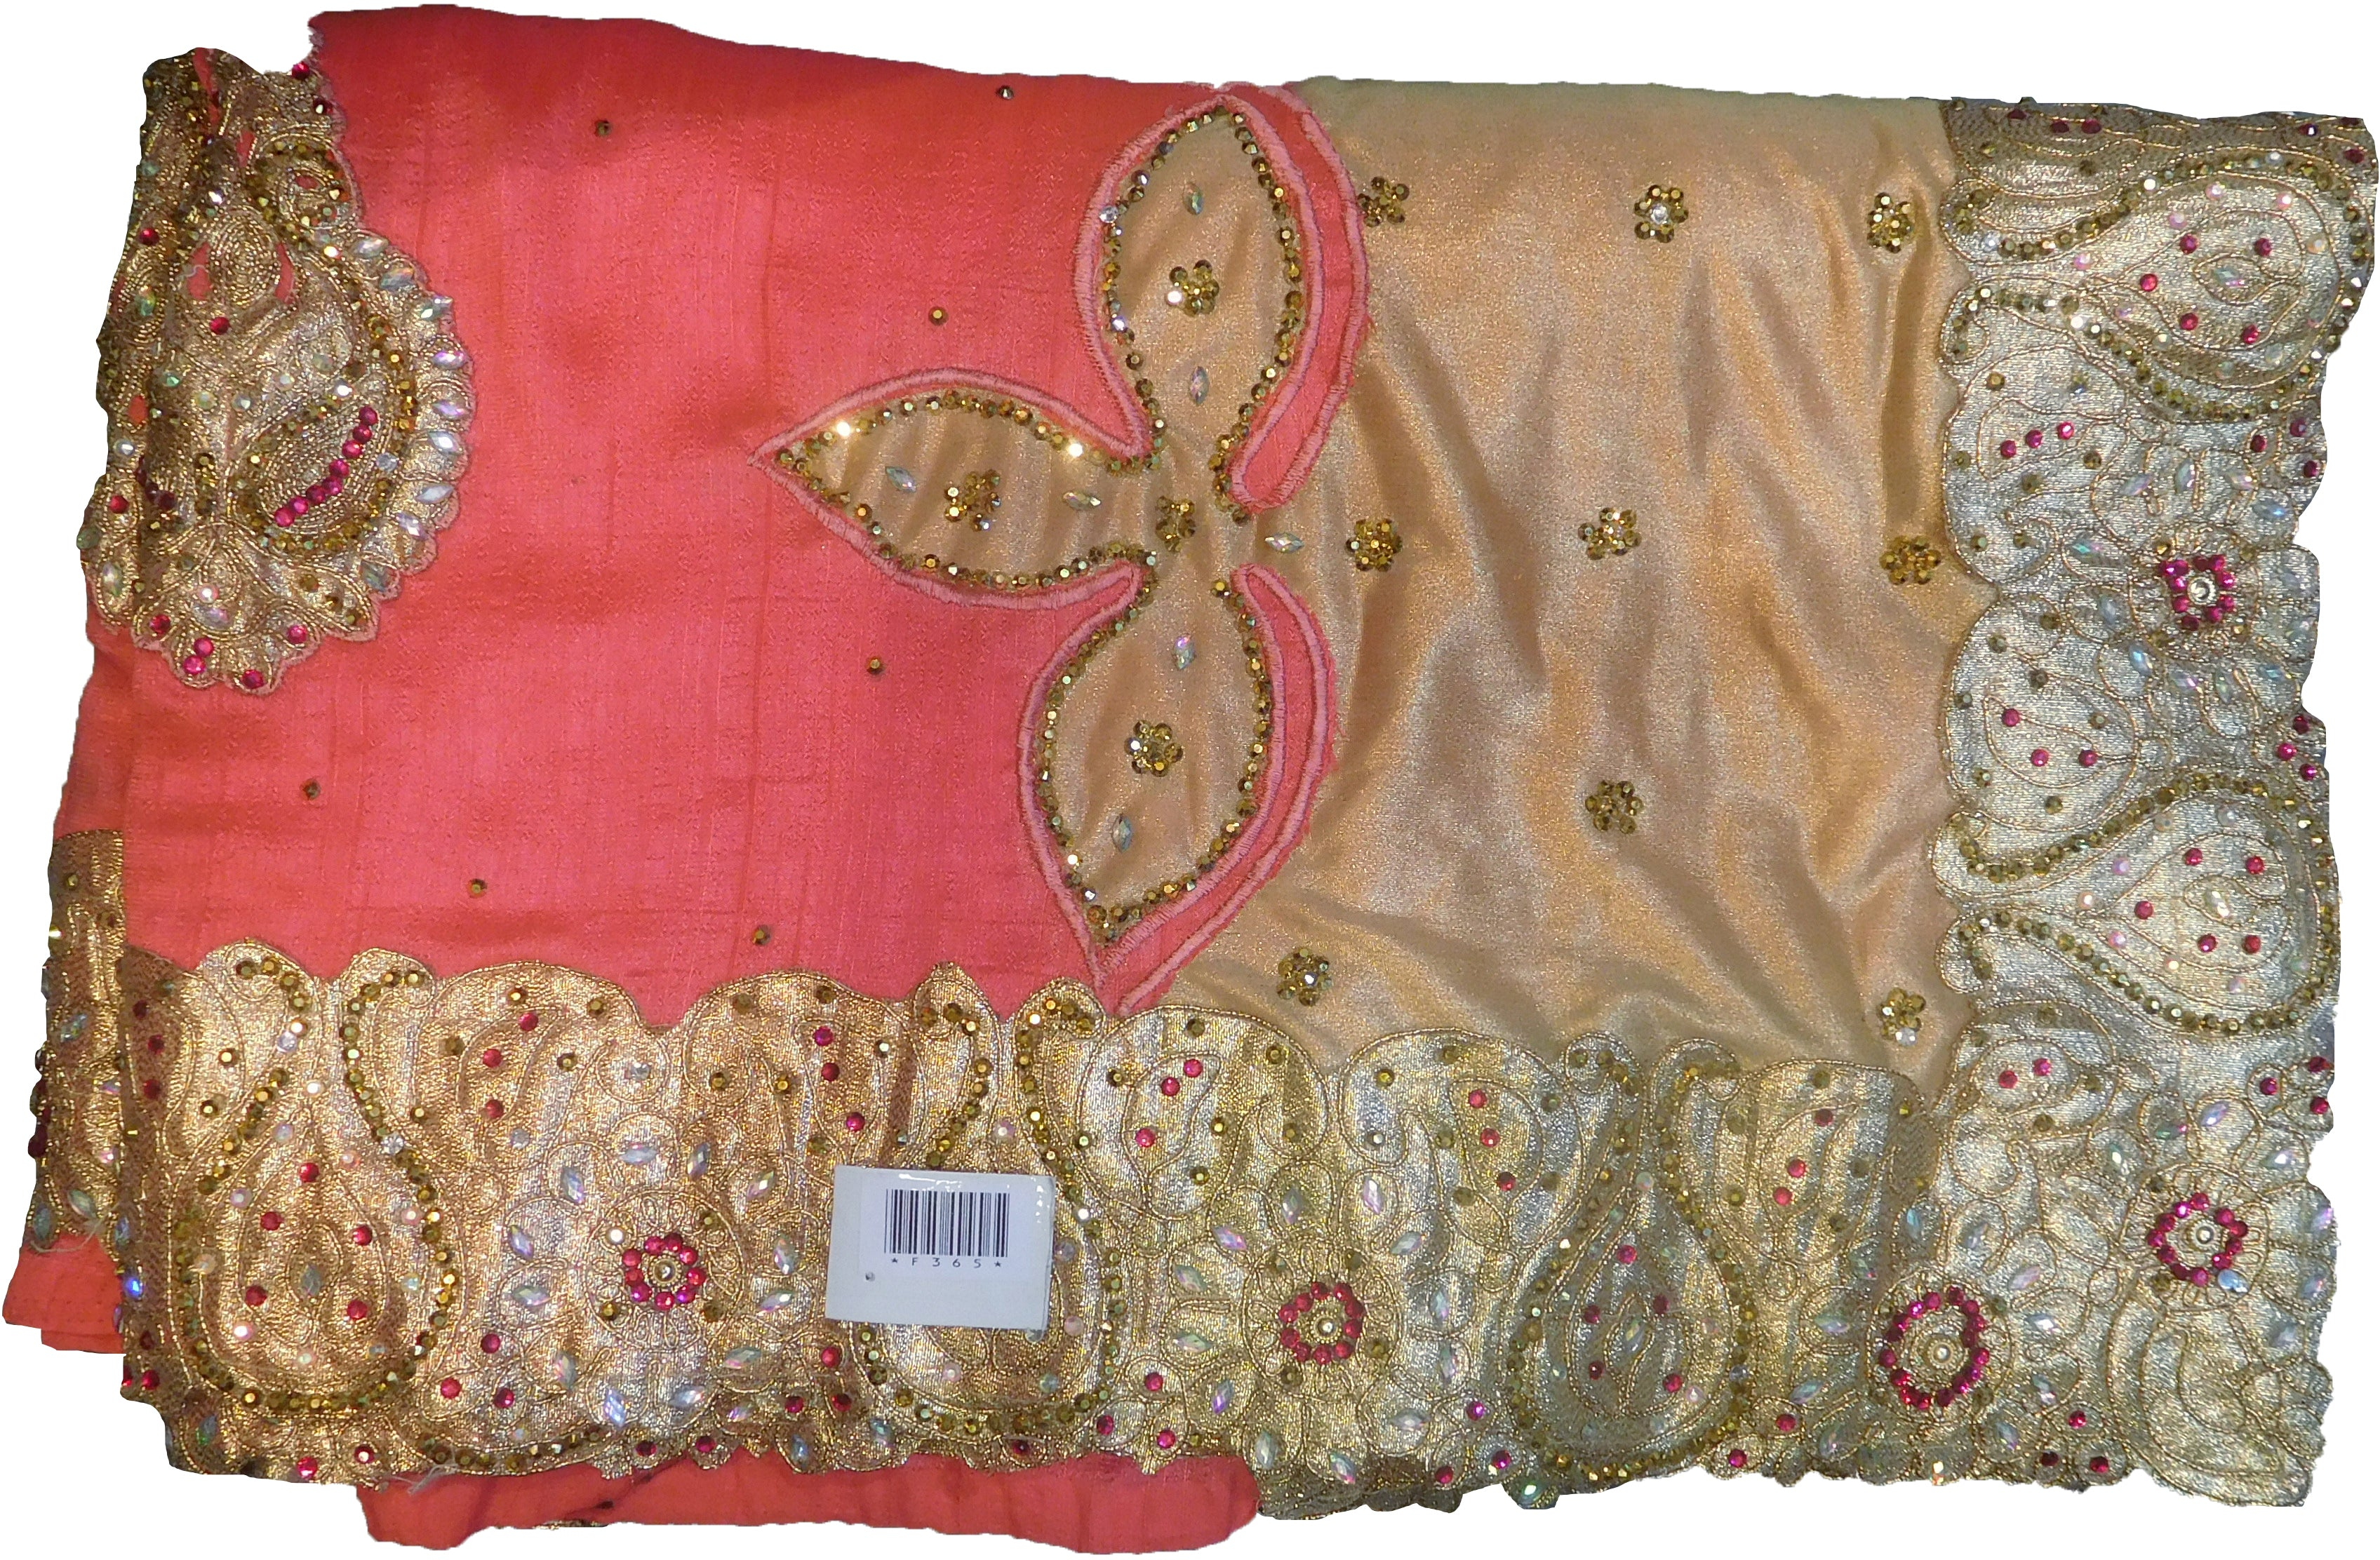 SMSAREE Pink Designer Wedding Partywear Silk (Vichitra) Stone Thread & Zari Hand Embroidery Work Bridal Saree Sari With Blouse Piece F365